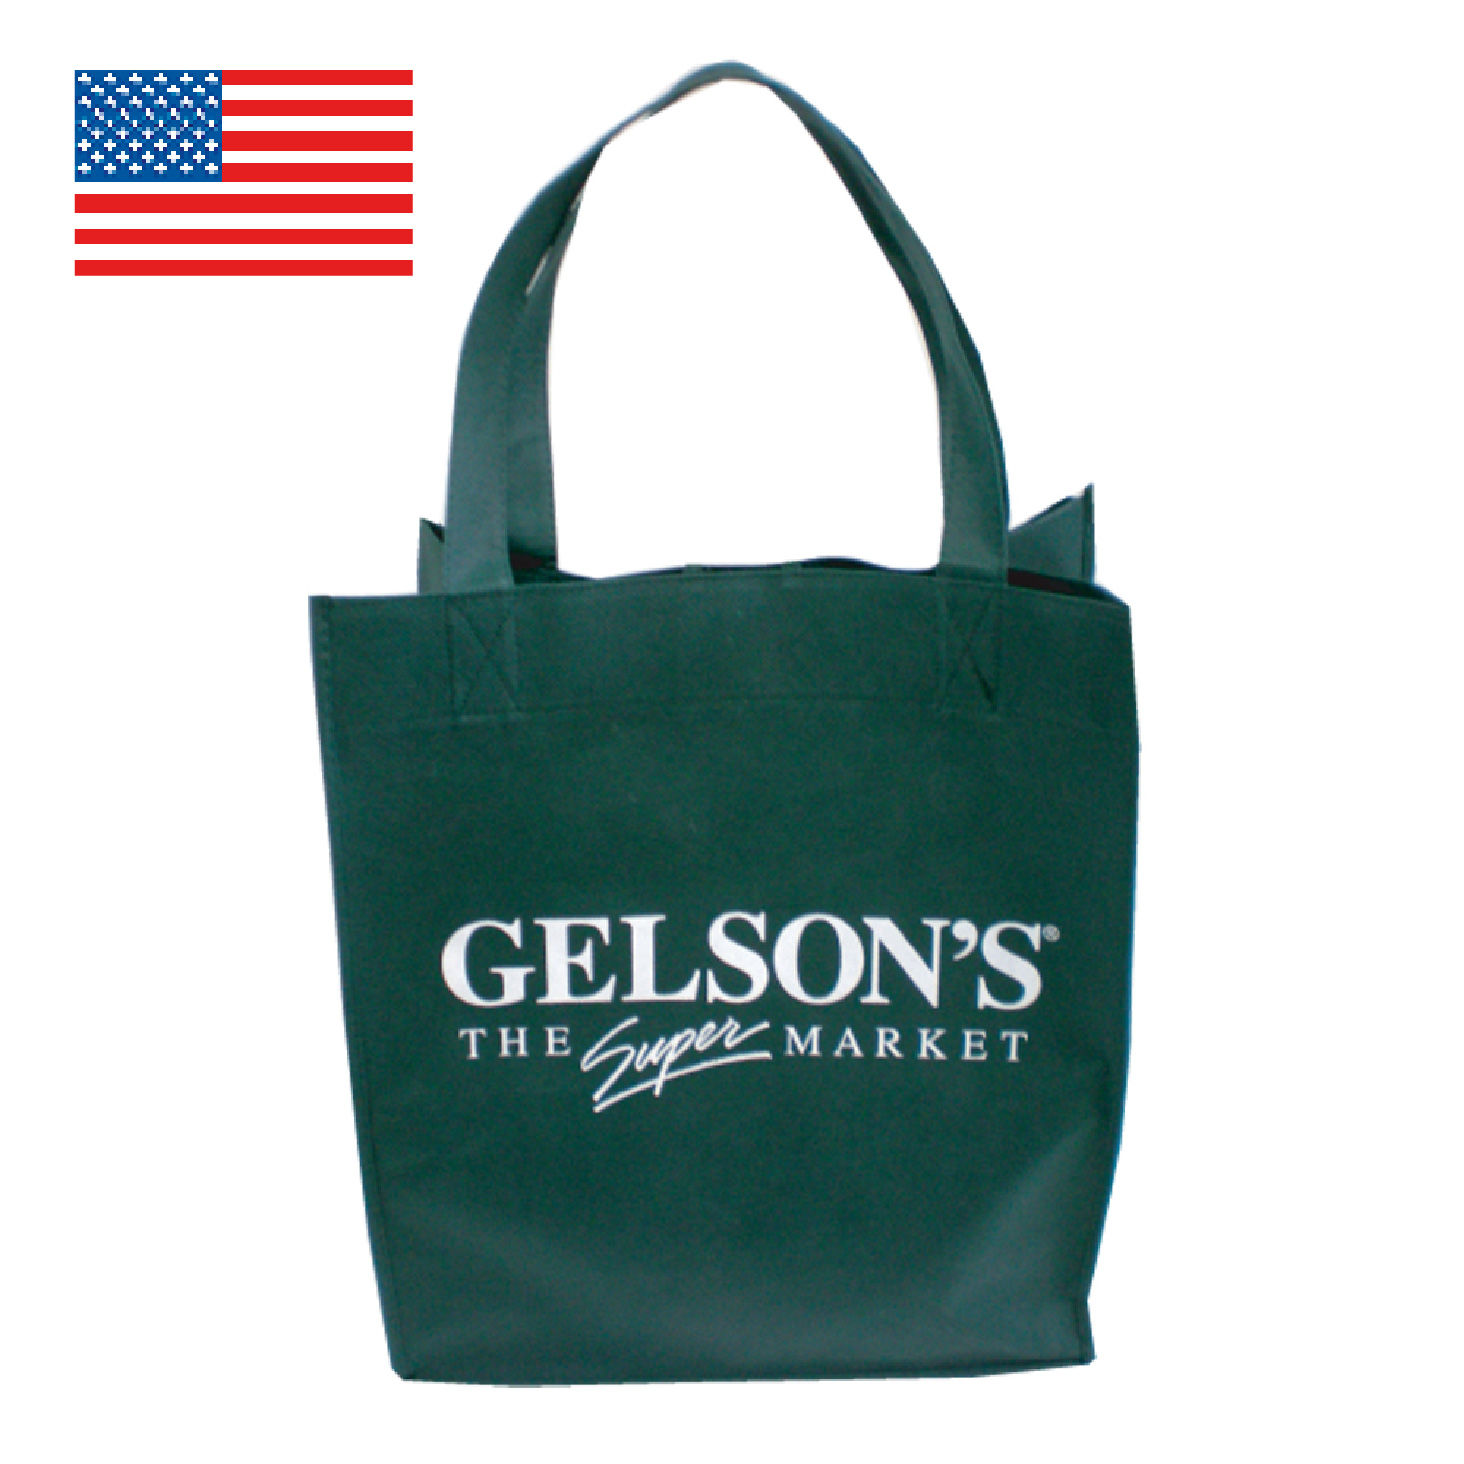 GELSONS ジェルソンズ (トートバッグ/グリーン) アメリカ直輸入